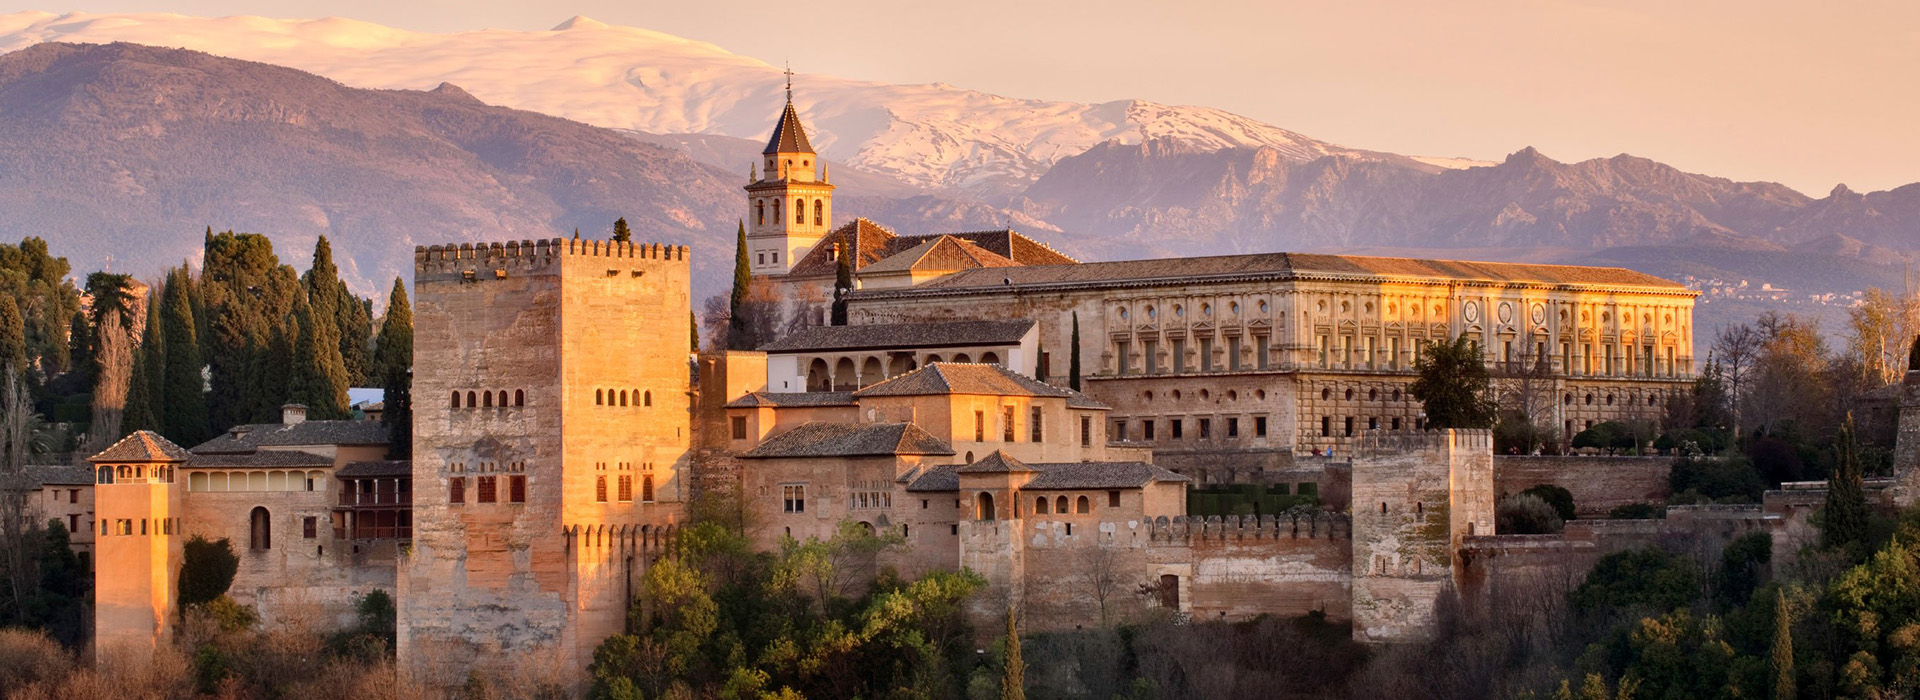 Yourandalusia.com - Travels in Andalucia - Tours in Southern Spain - The Alhambra - Granada - Slider